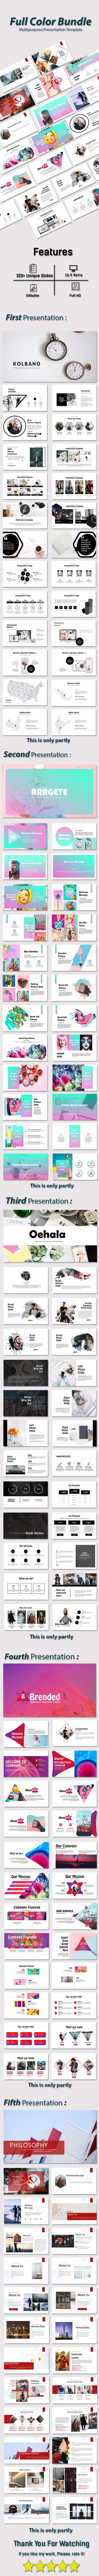 Full Color 5 in 1 Bundle Presentation - Creative PowerPoint Templates